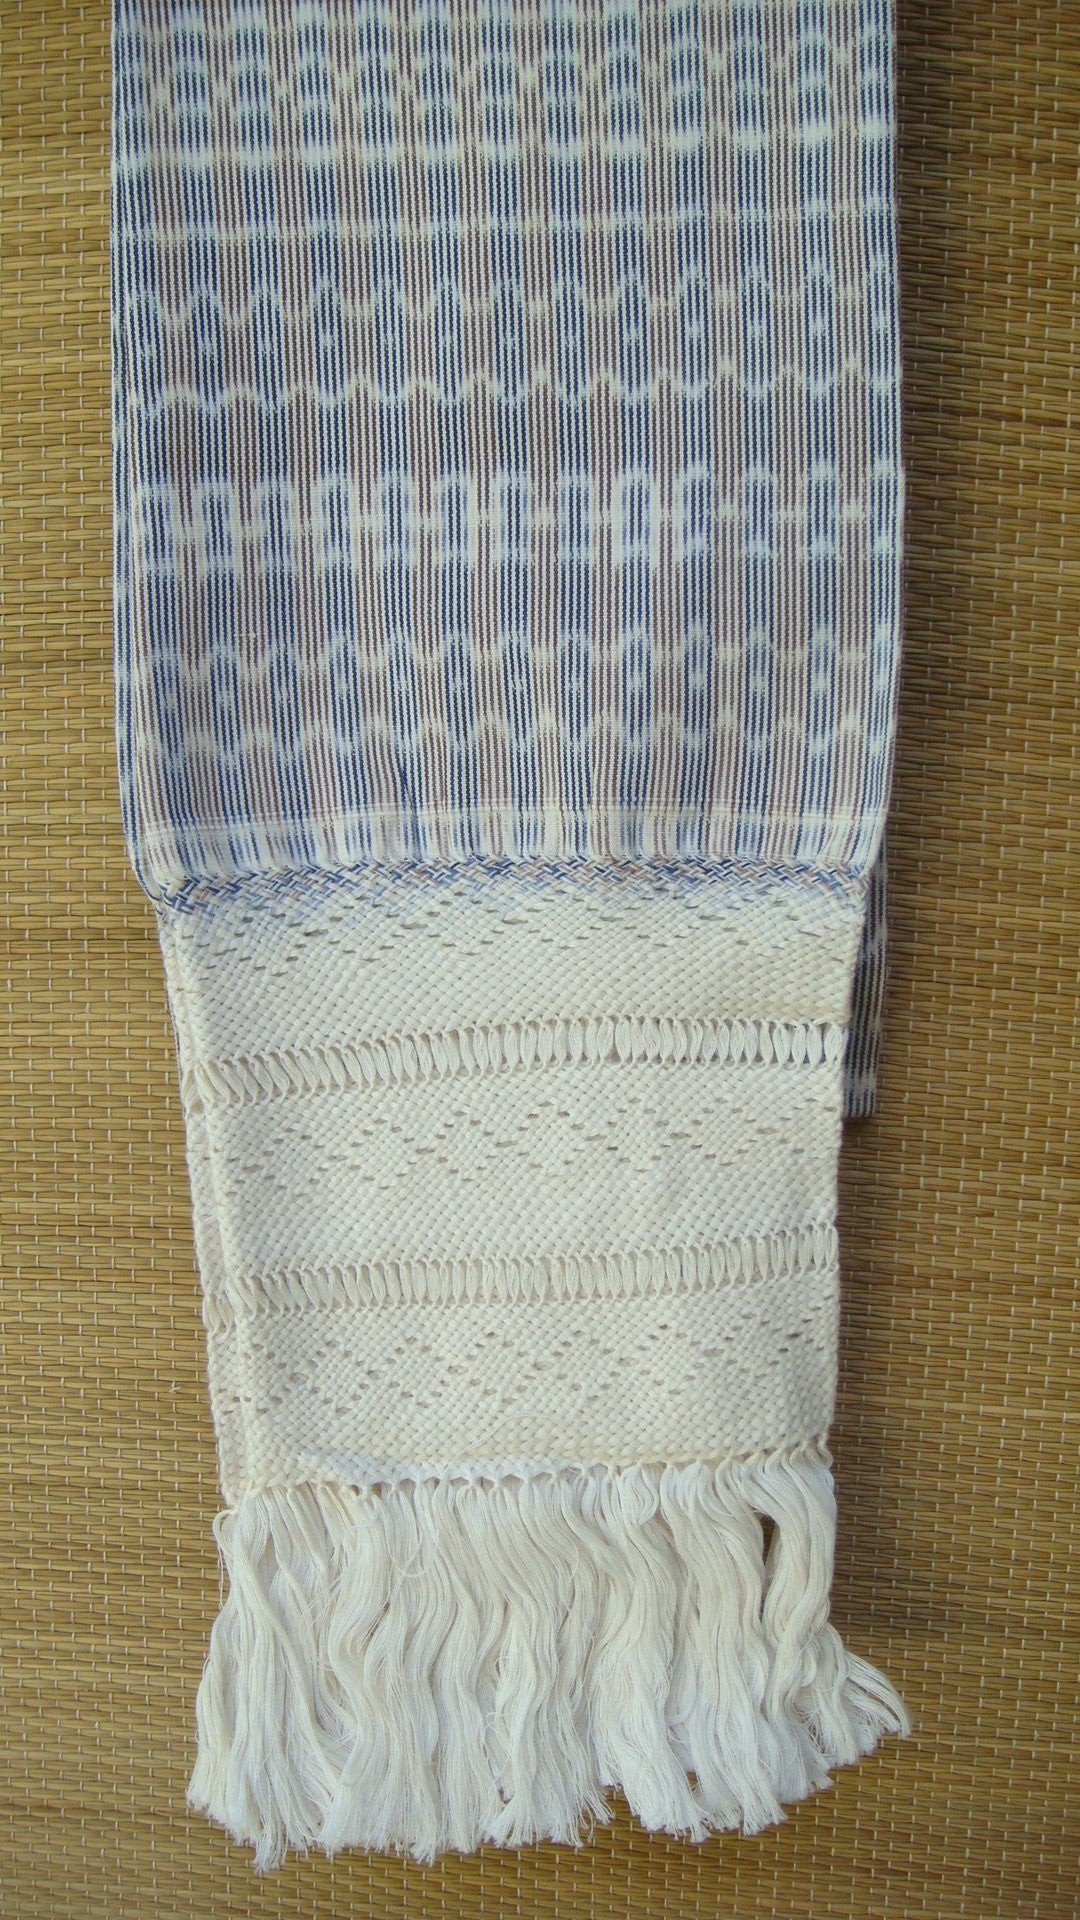 Mexican Handwoven Brown with Cream Rebozo Shawl Wrap Scarf Runner From Tenancingo